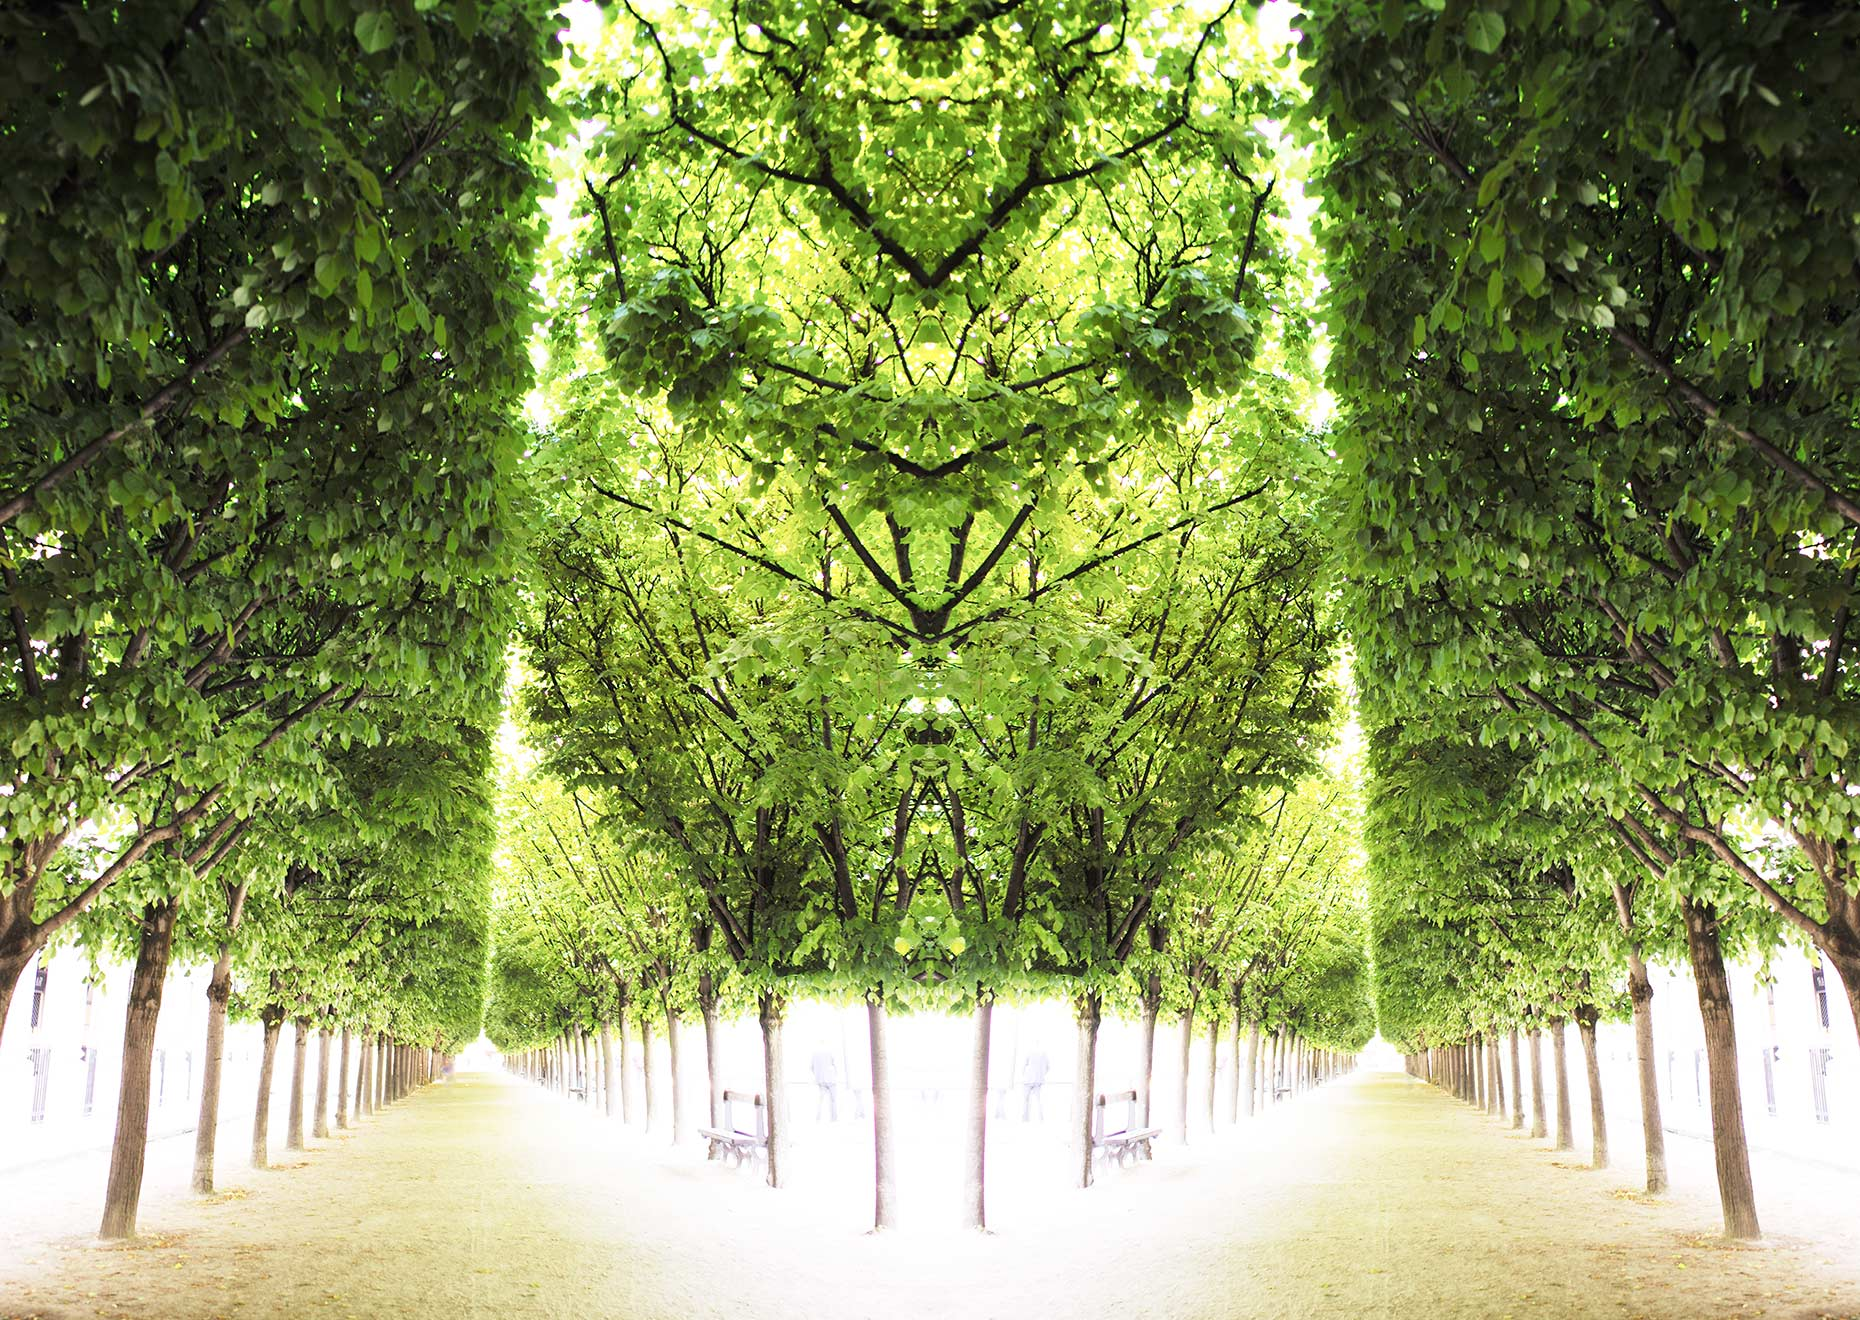 Trees-III-Palais-Royale_web